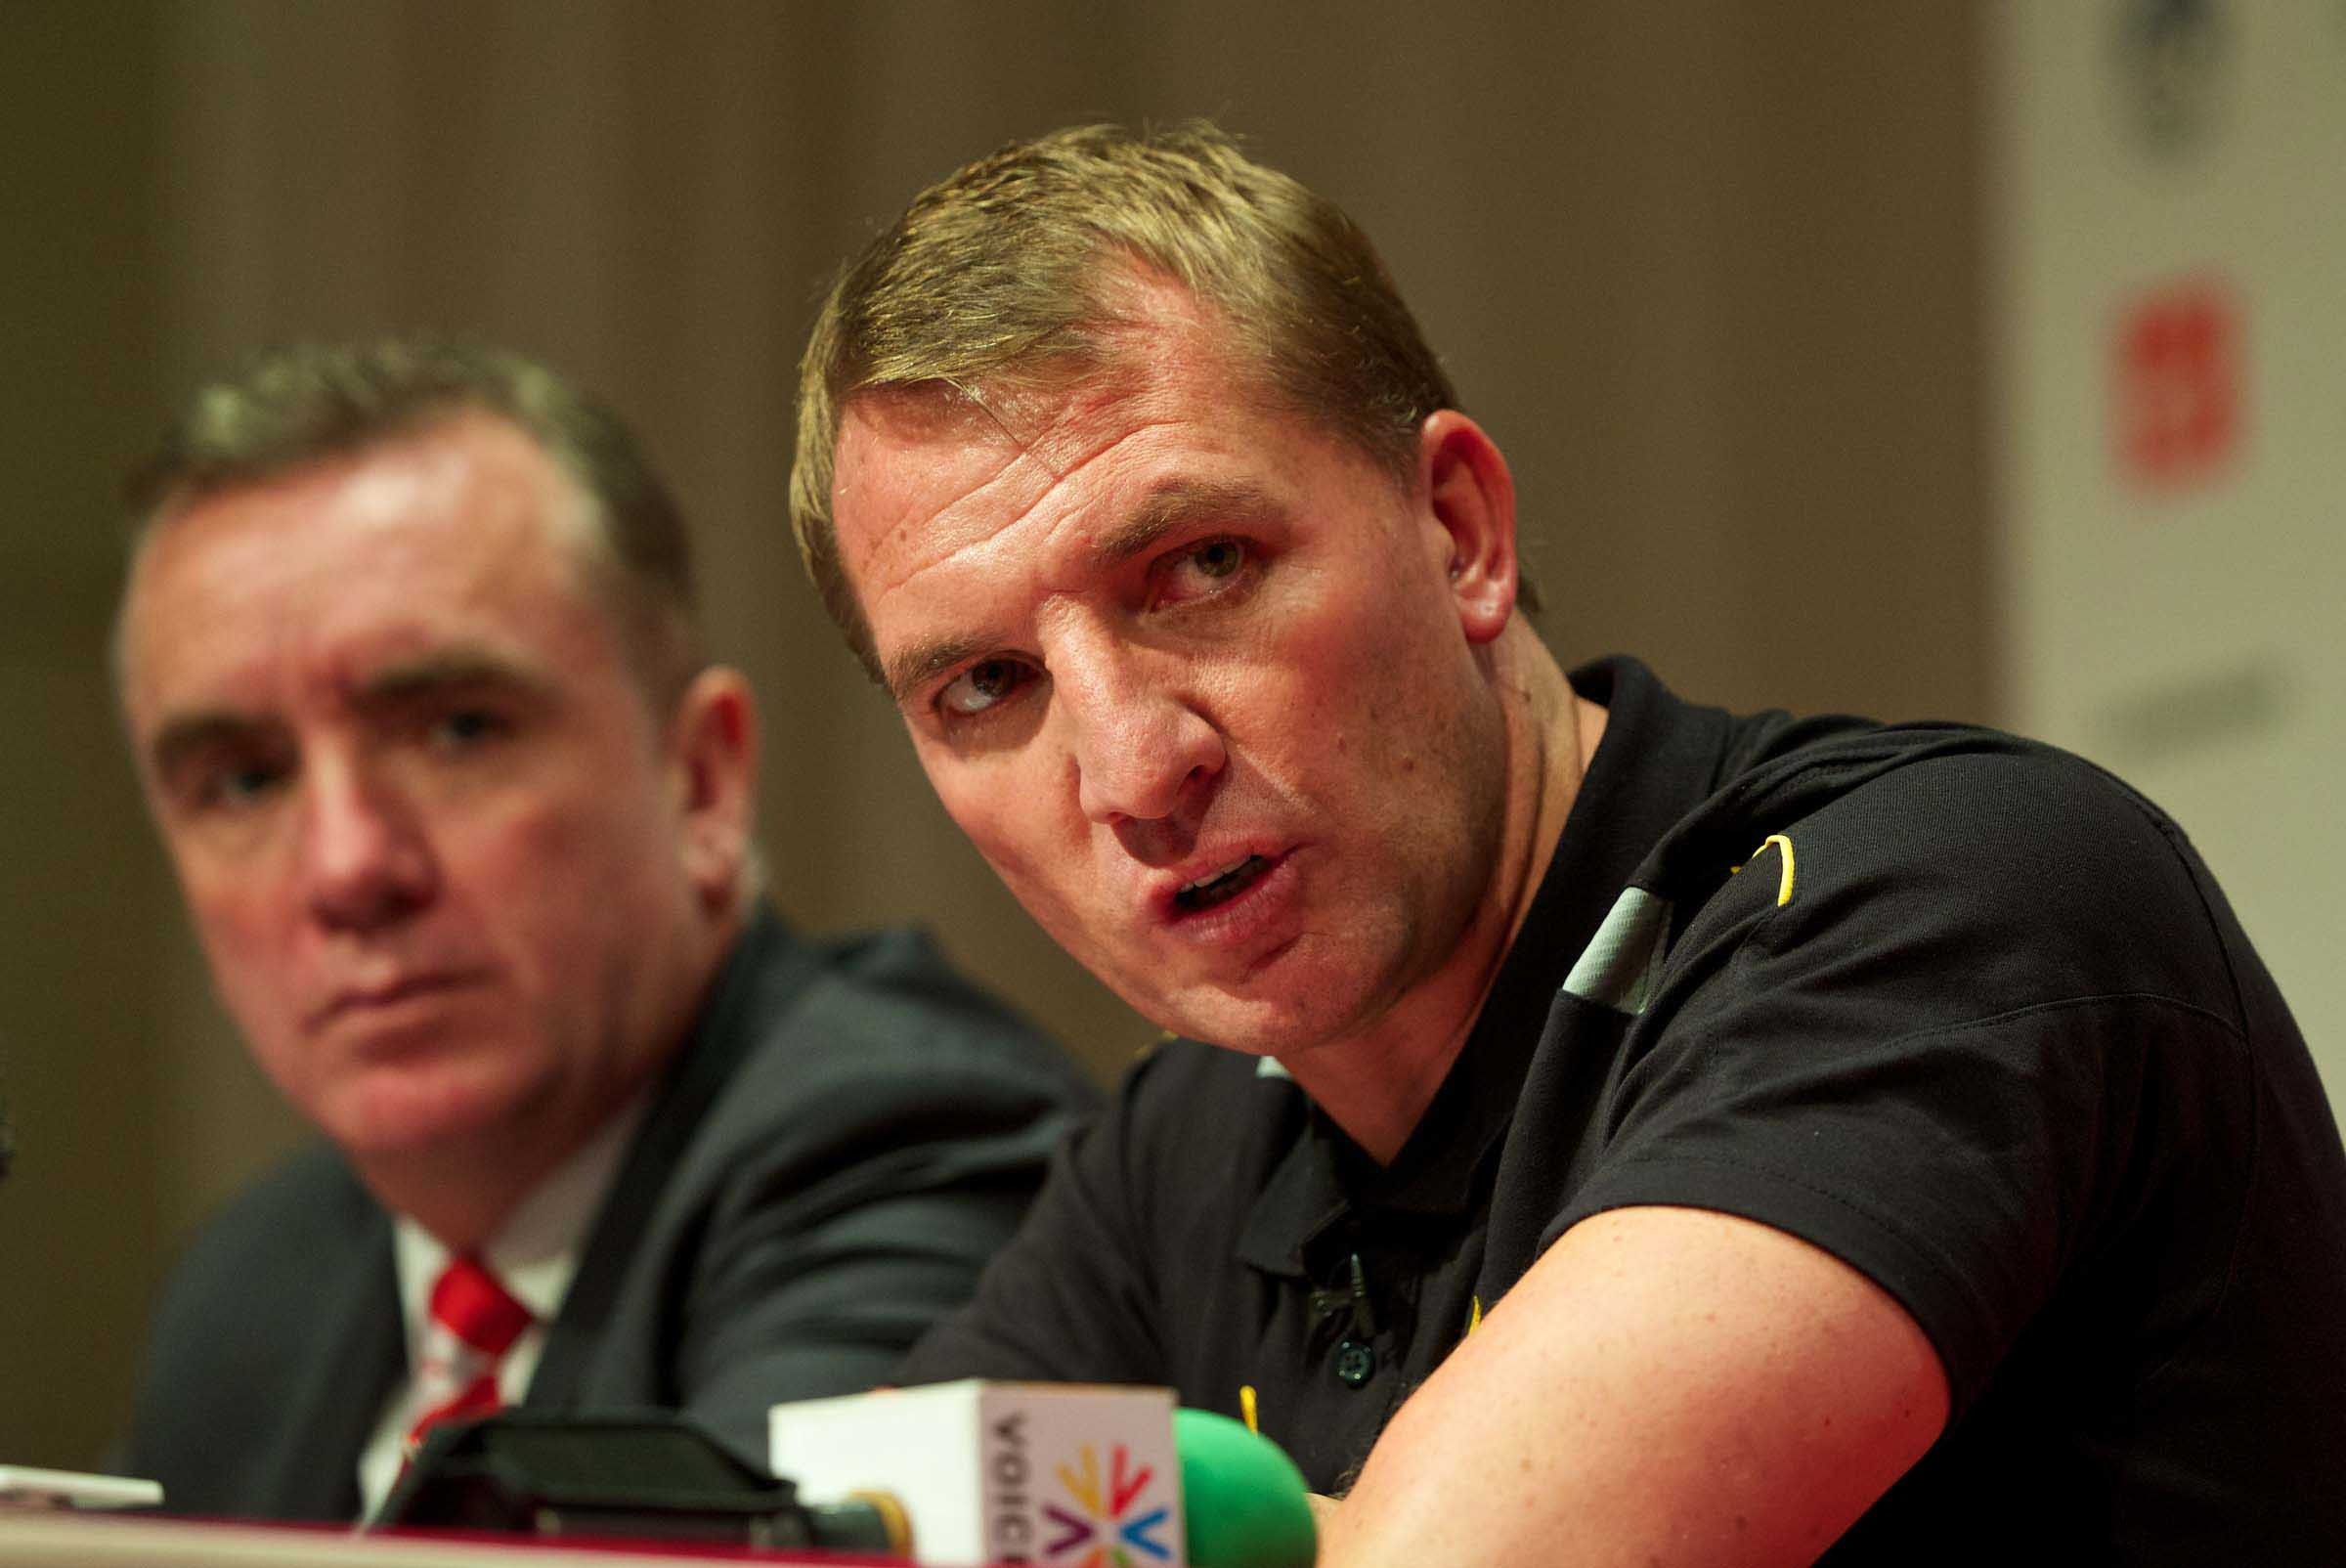 Football - Liverpool FC Preseason Tour 2013 - Liverpool Press Conference